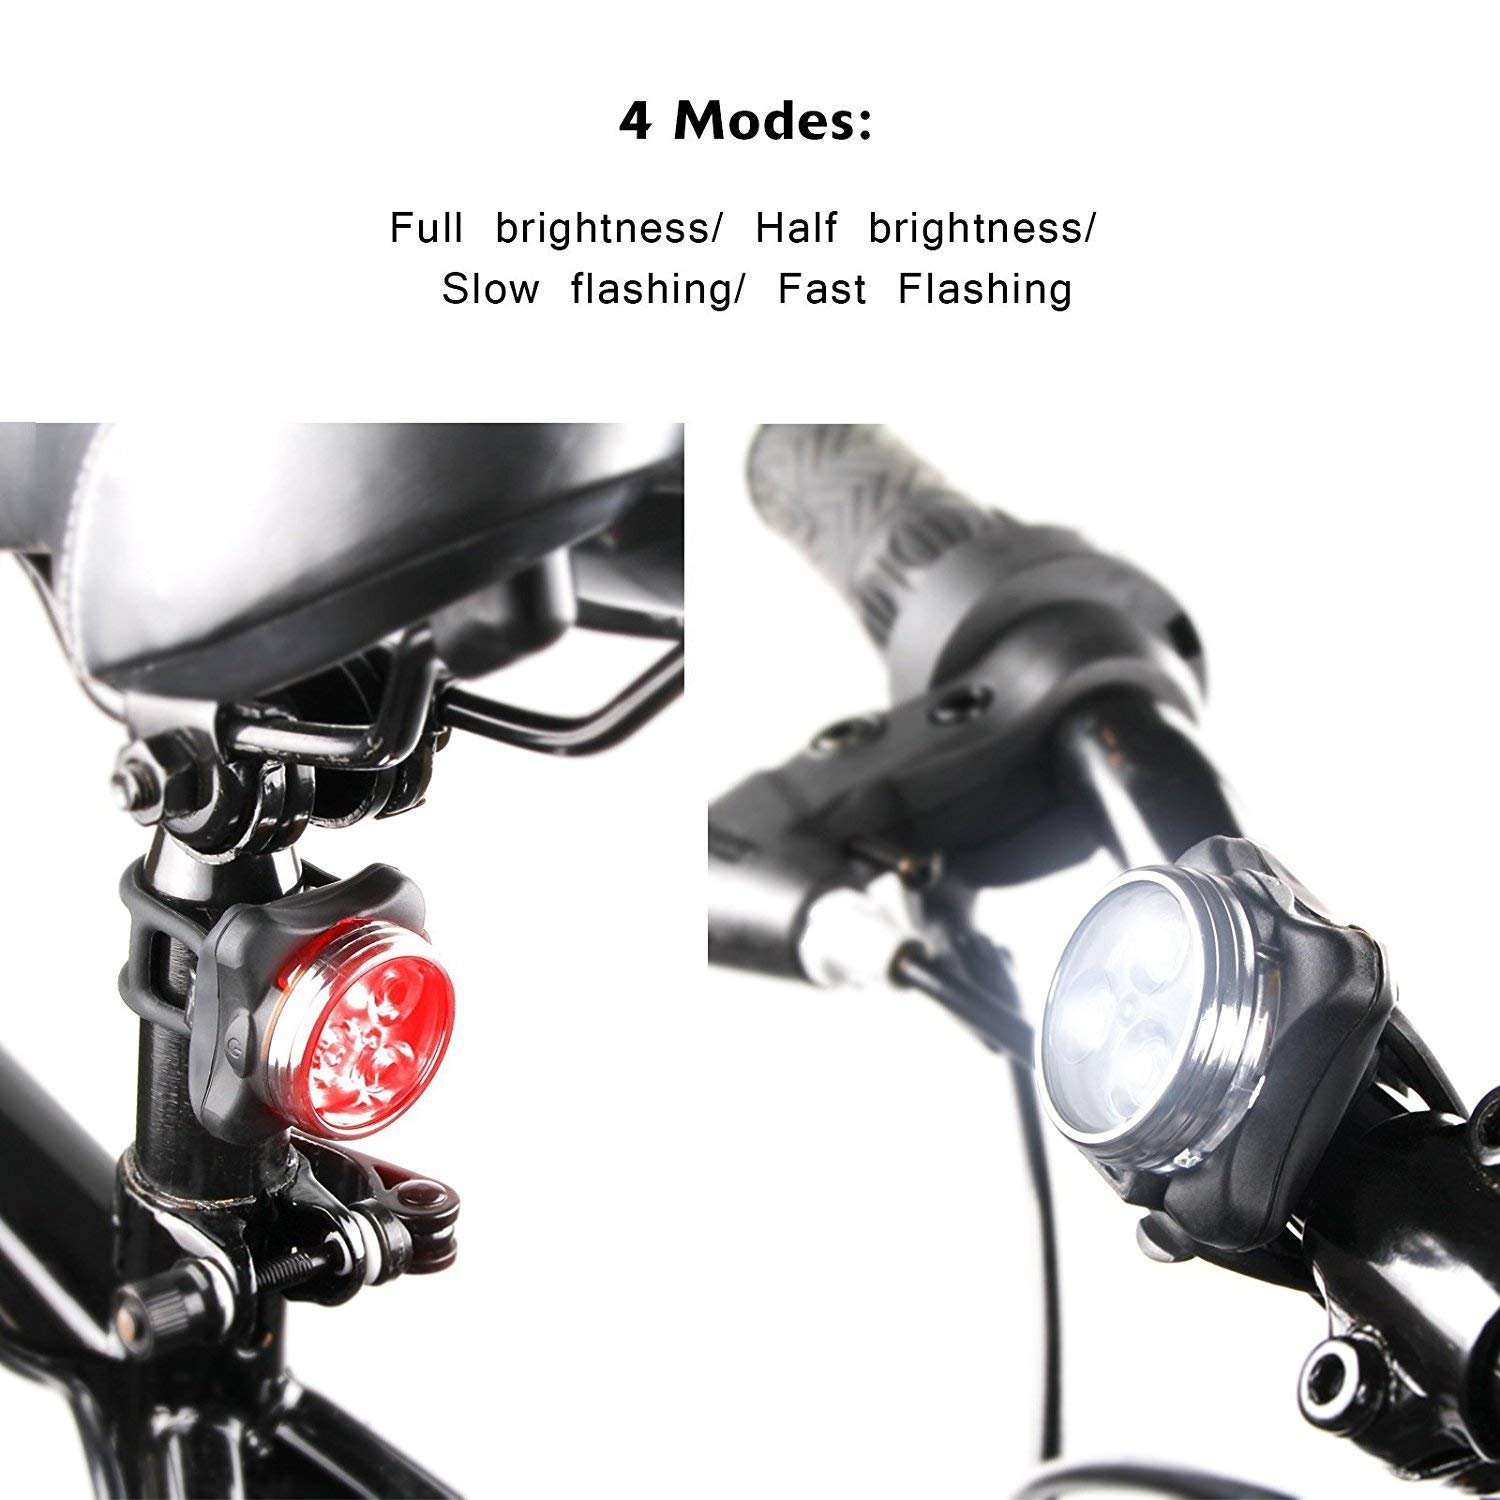 DUBUT21 Super Bright Bicycle Light Set USB Rechargeable Bike Headlight Free Tail Light Waterproof LED Bike Light Easy to Install Cycling Safety Commuter Flashlight Best Mountain Road City Bicycle by DUBUT21 (Image #2)